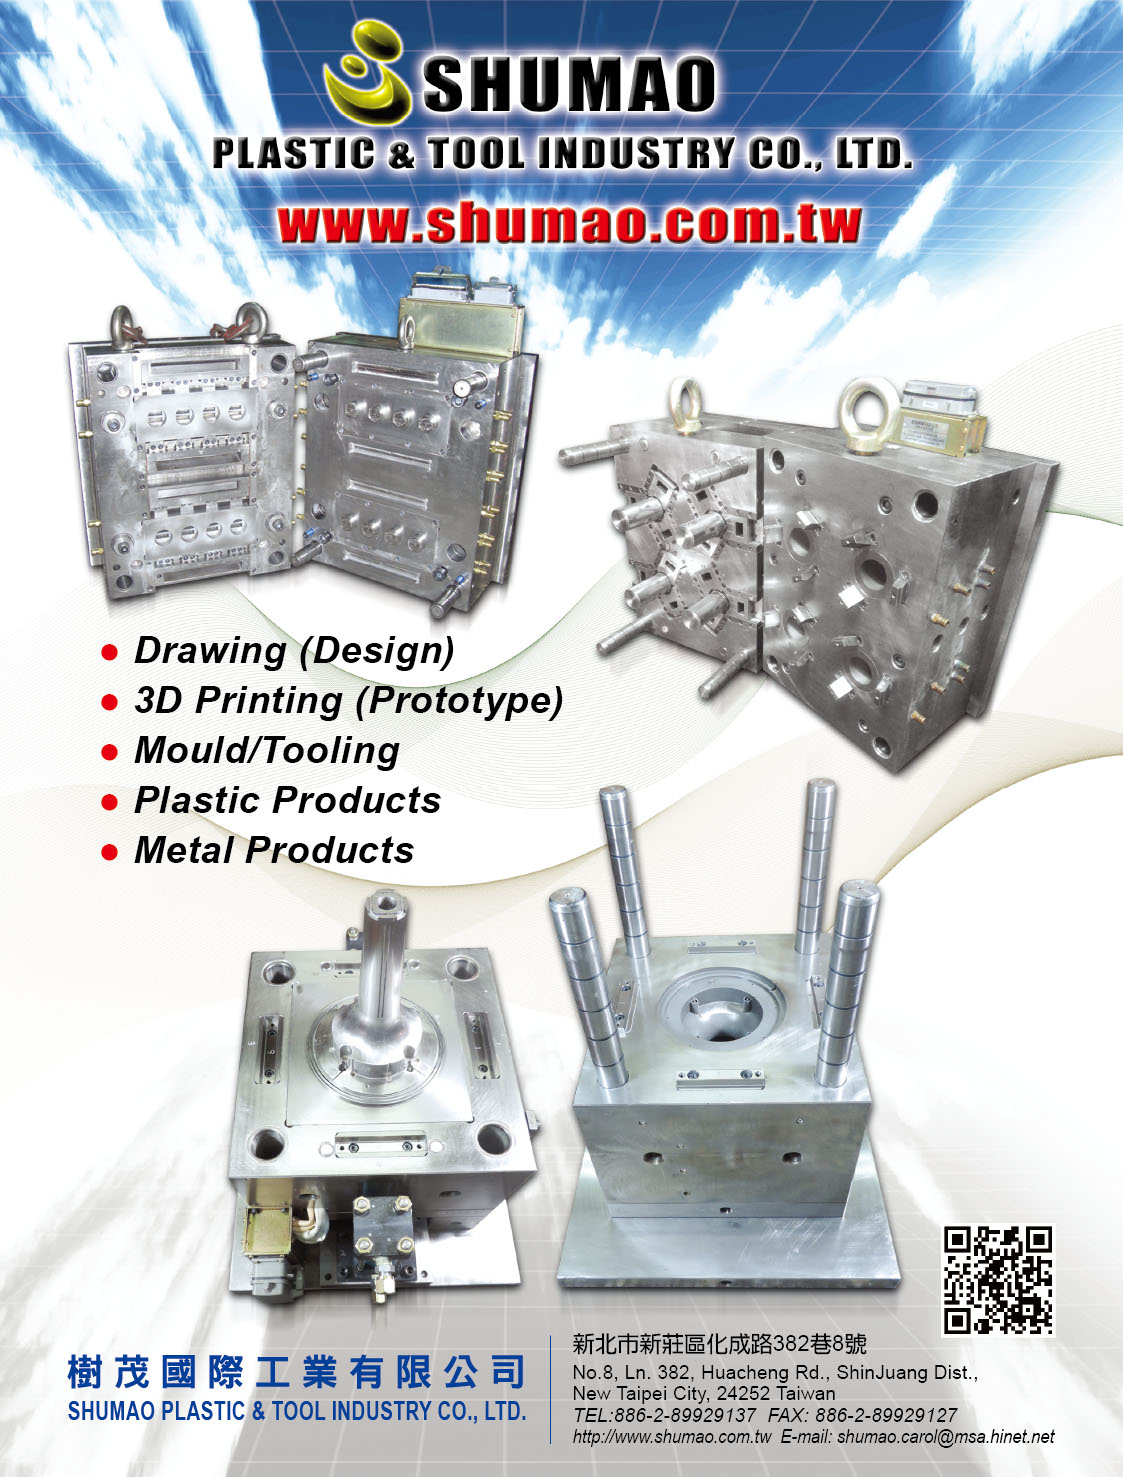 SHUMAO PLASTIC & TOOL INDUSTRY CO., LTD.